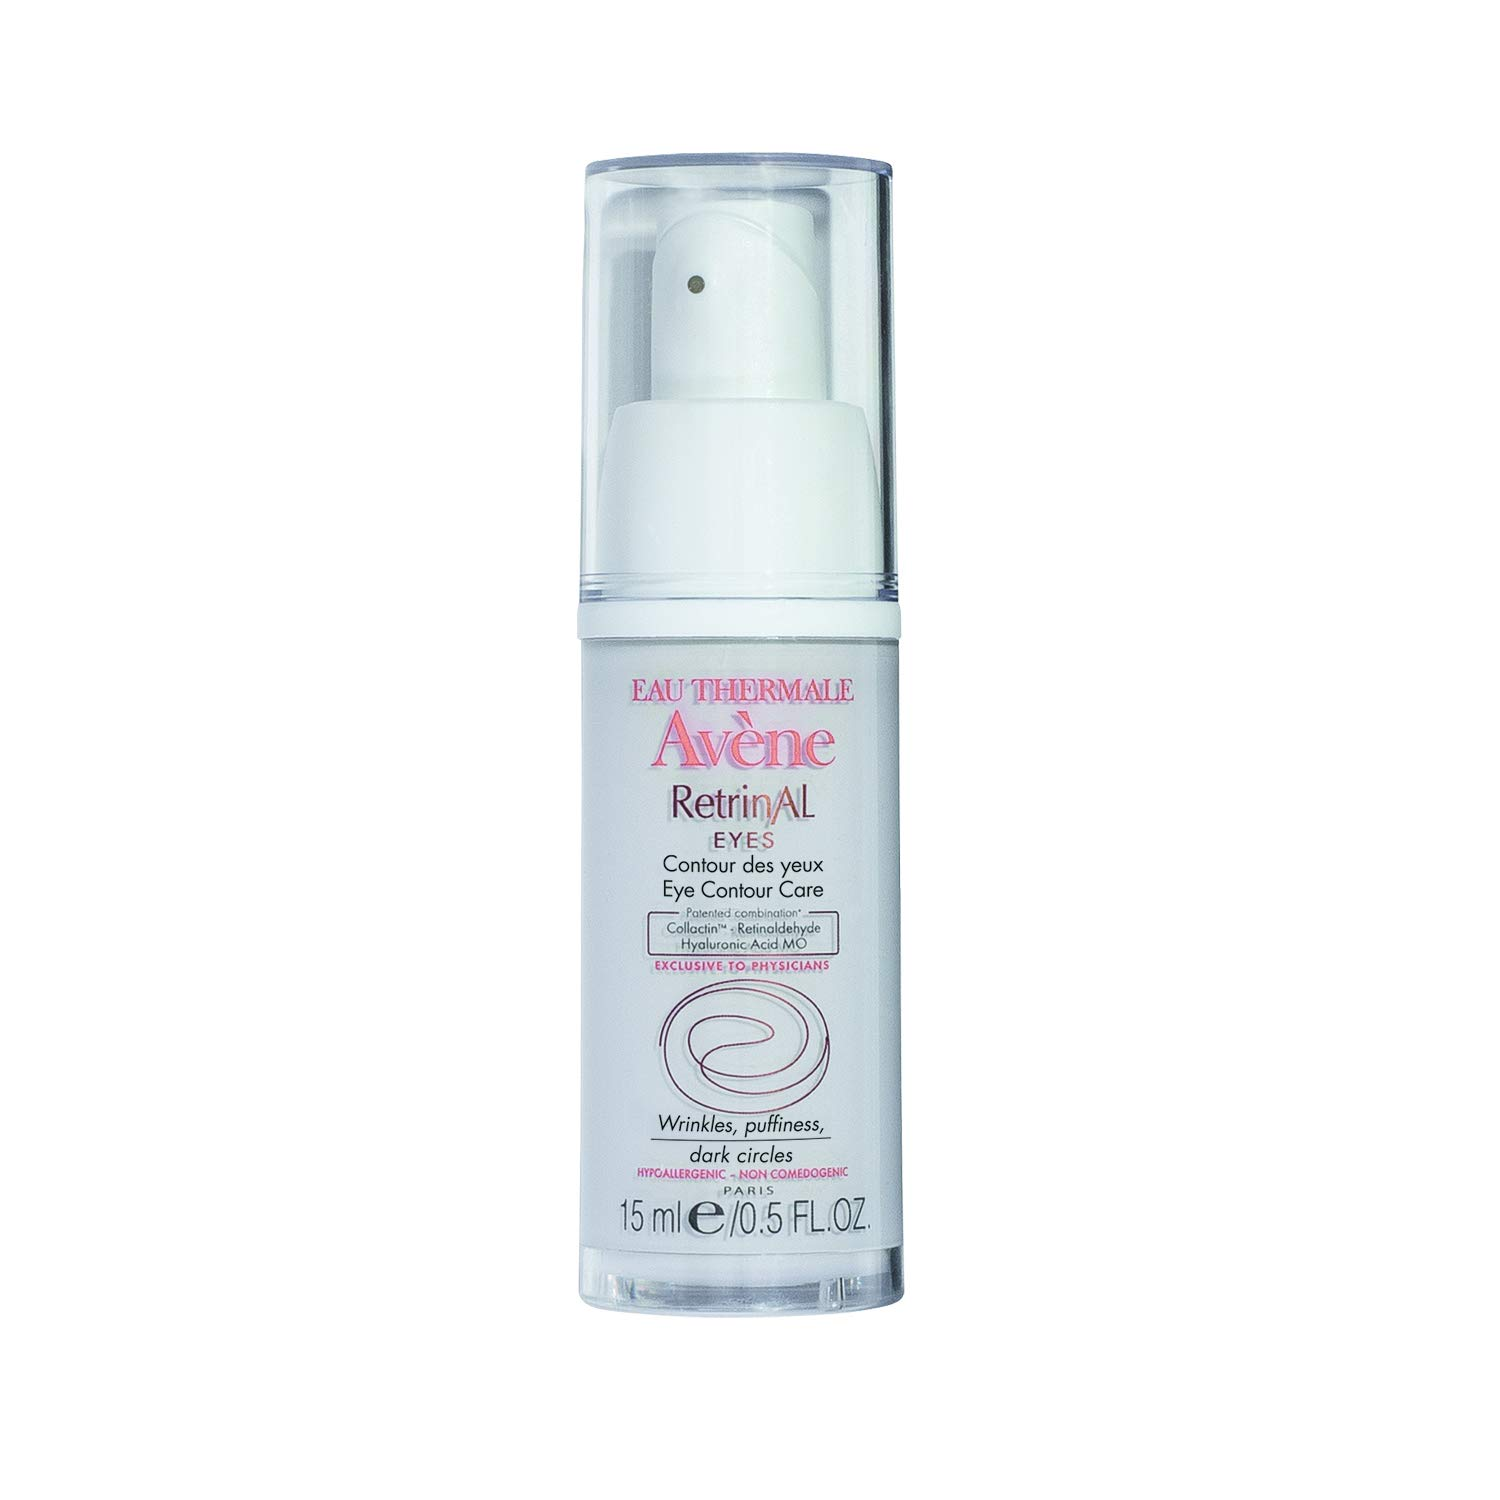 Eau Thermale Avène RetrinAL EYES, Retinaldehyde & Hyaluronic Acid MO, Reduce the Appearance of Fine Lines, Puffiness, Dark Circles, 0.5 oz.